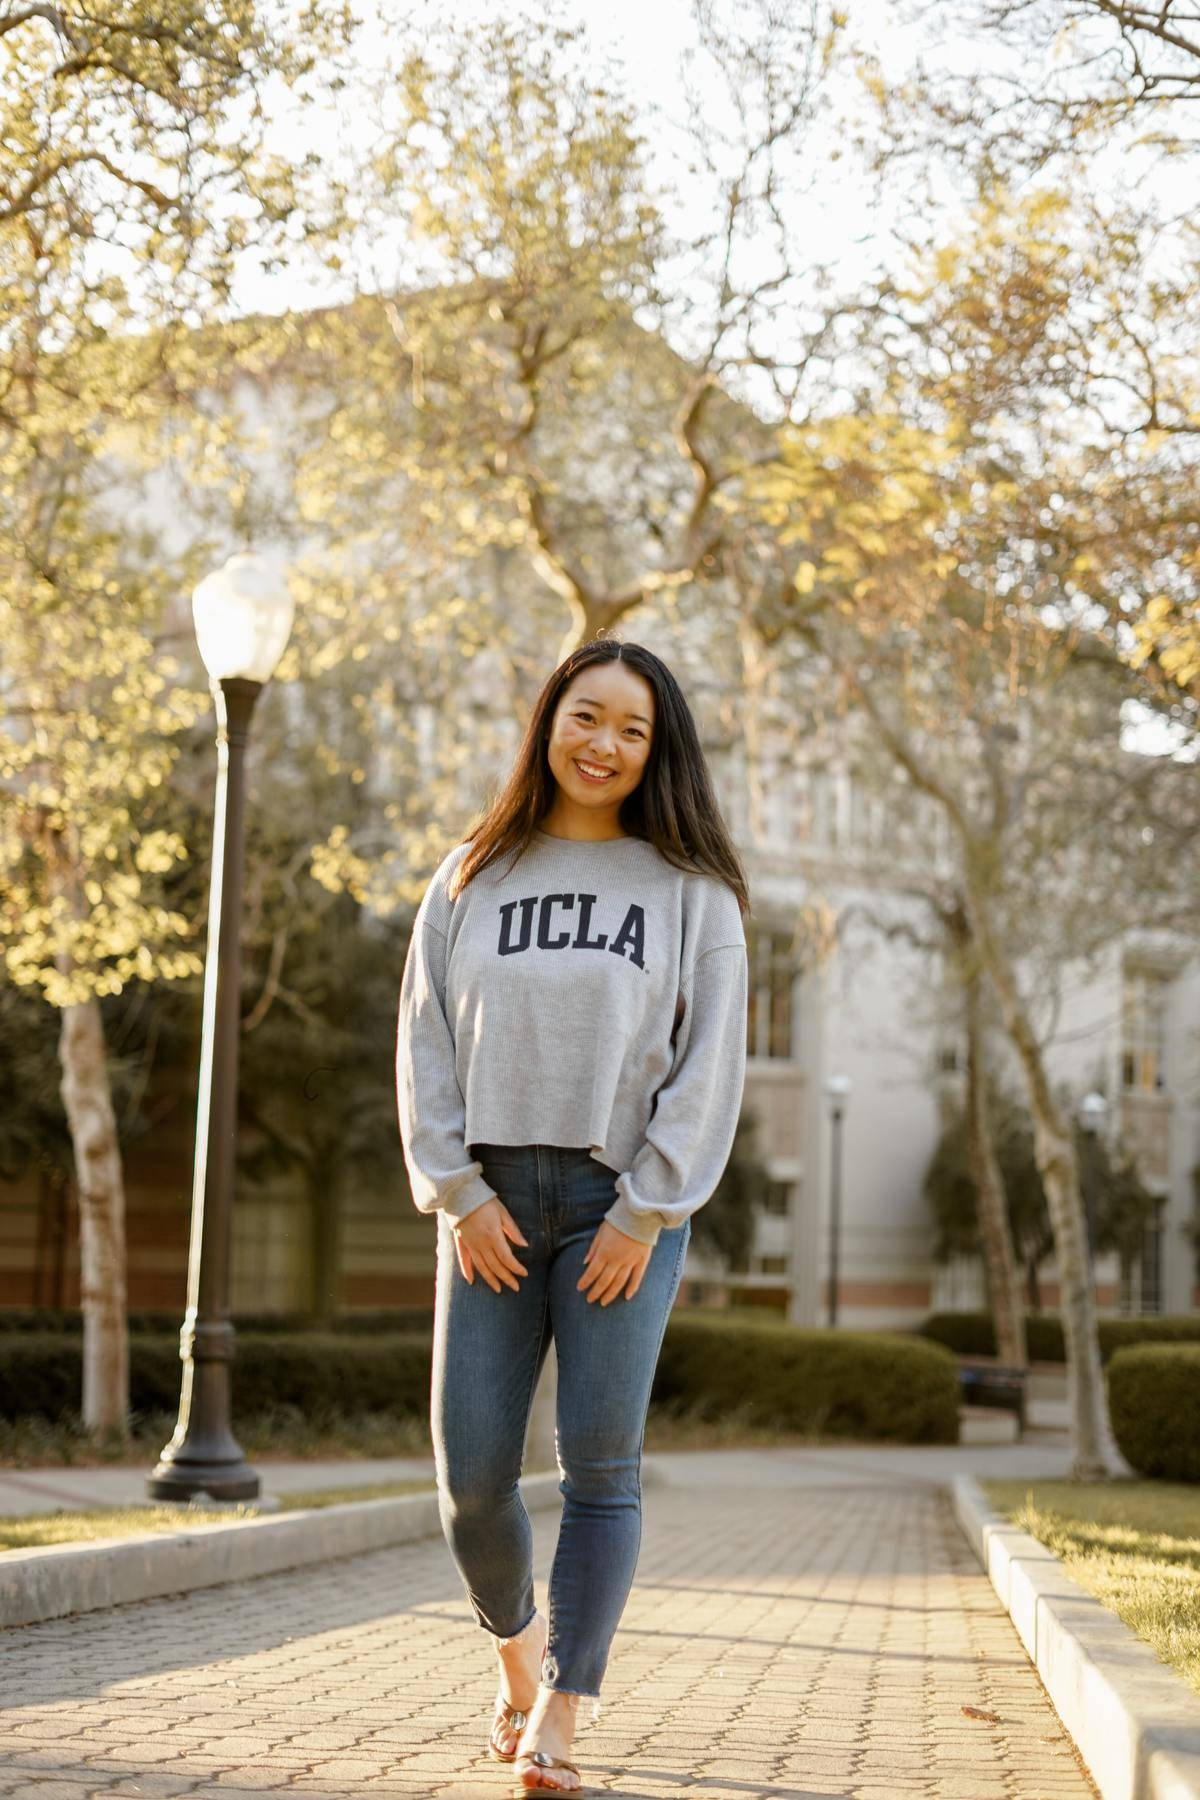 woman in a UCLA sweater